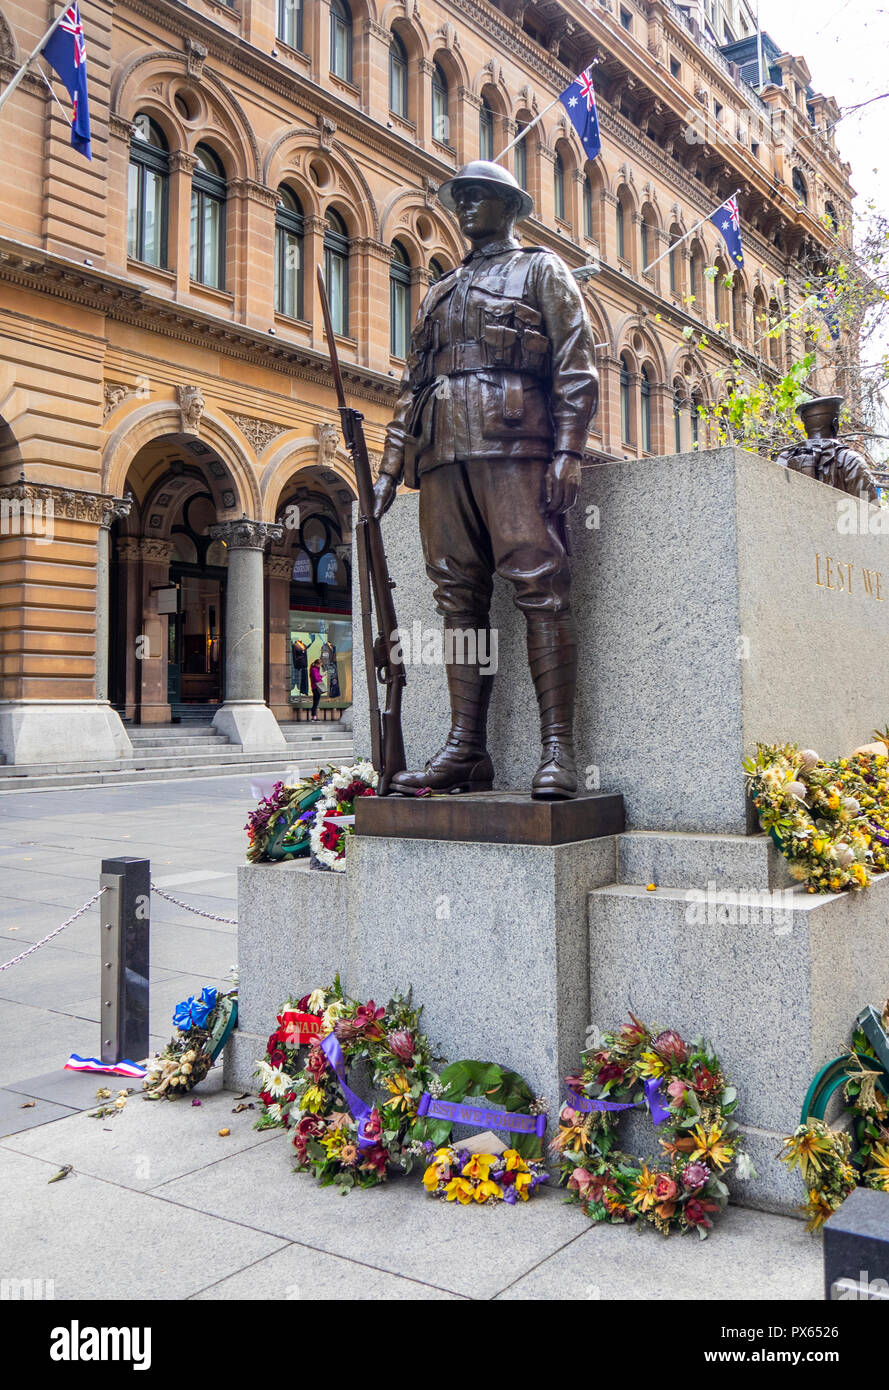 Wreathes placed at base of bronze statue of a soldier commemorating ANZAC day in Martin Place Sydney NSW Australia. - Stock Image